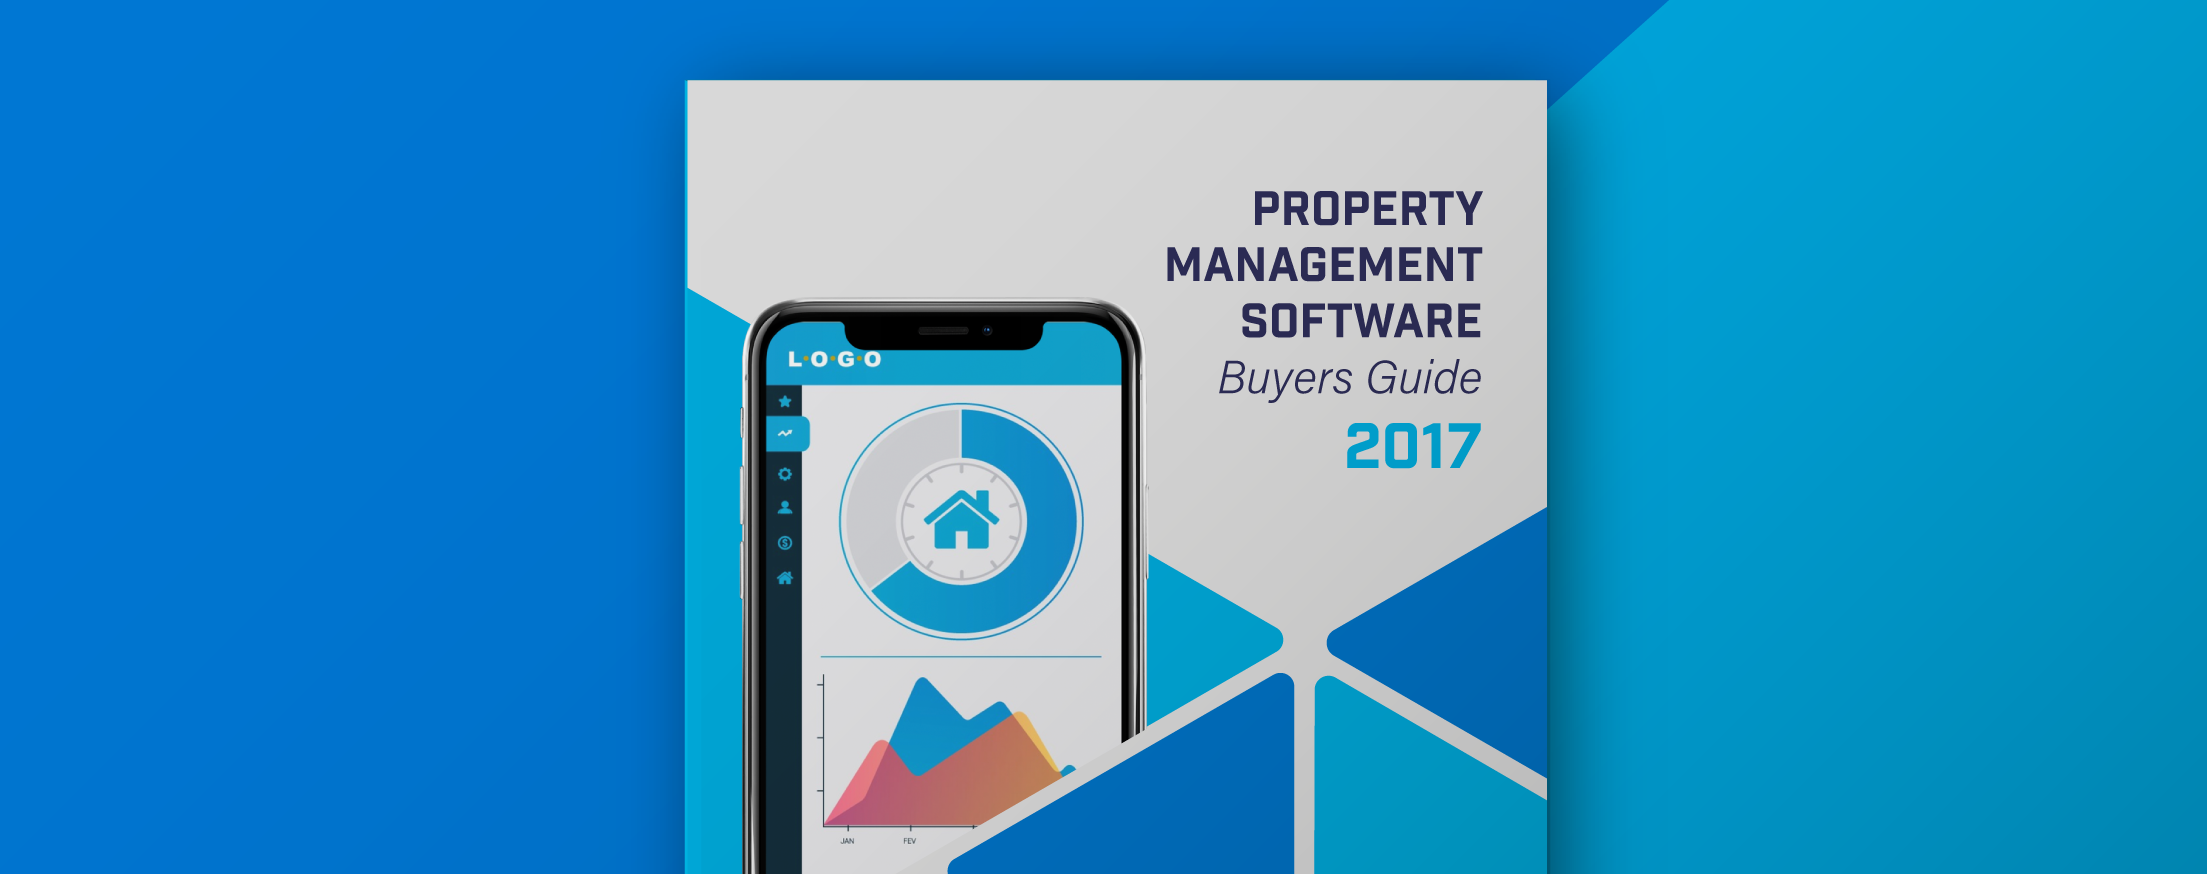 property-management-software-buyers-guide.png